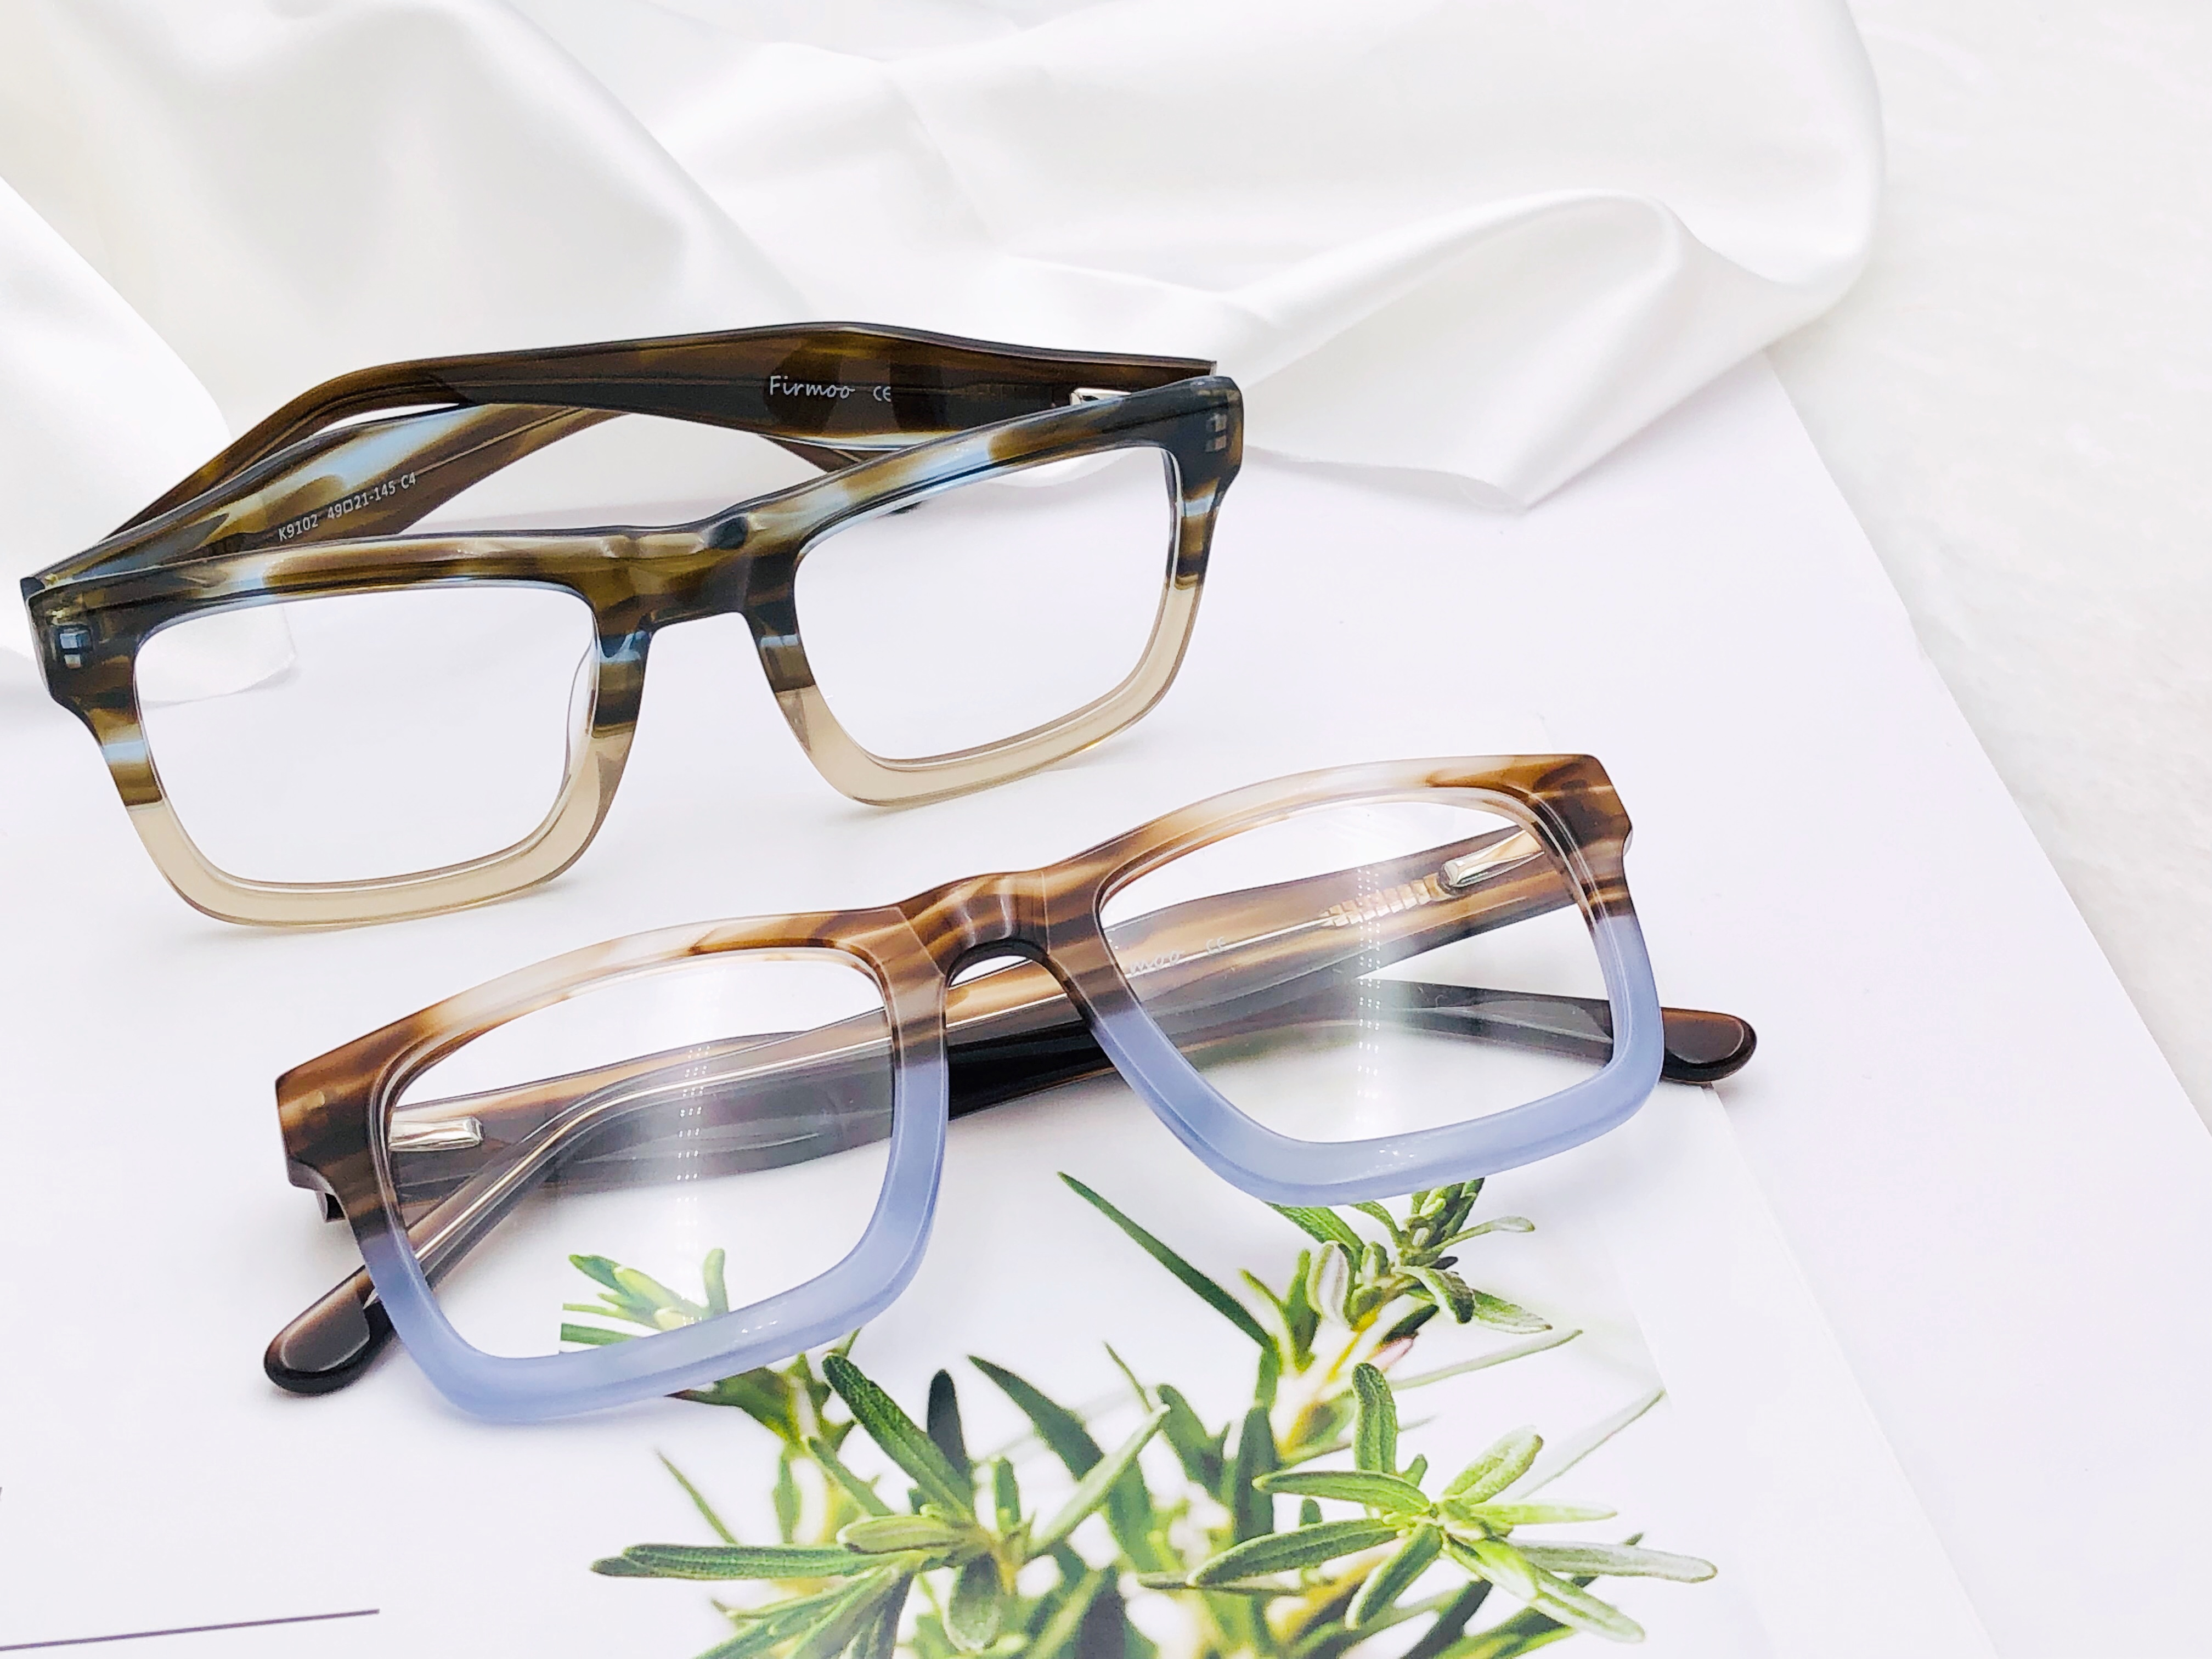 e0300deb5c9c Rectangle frames never go out of style. This season, we highly welcome  #K9102A. Designed with a cool, laid-back and androgynous appeal, these  funky glasses ...